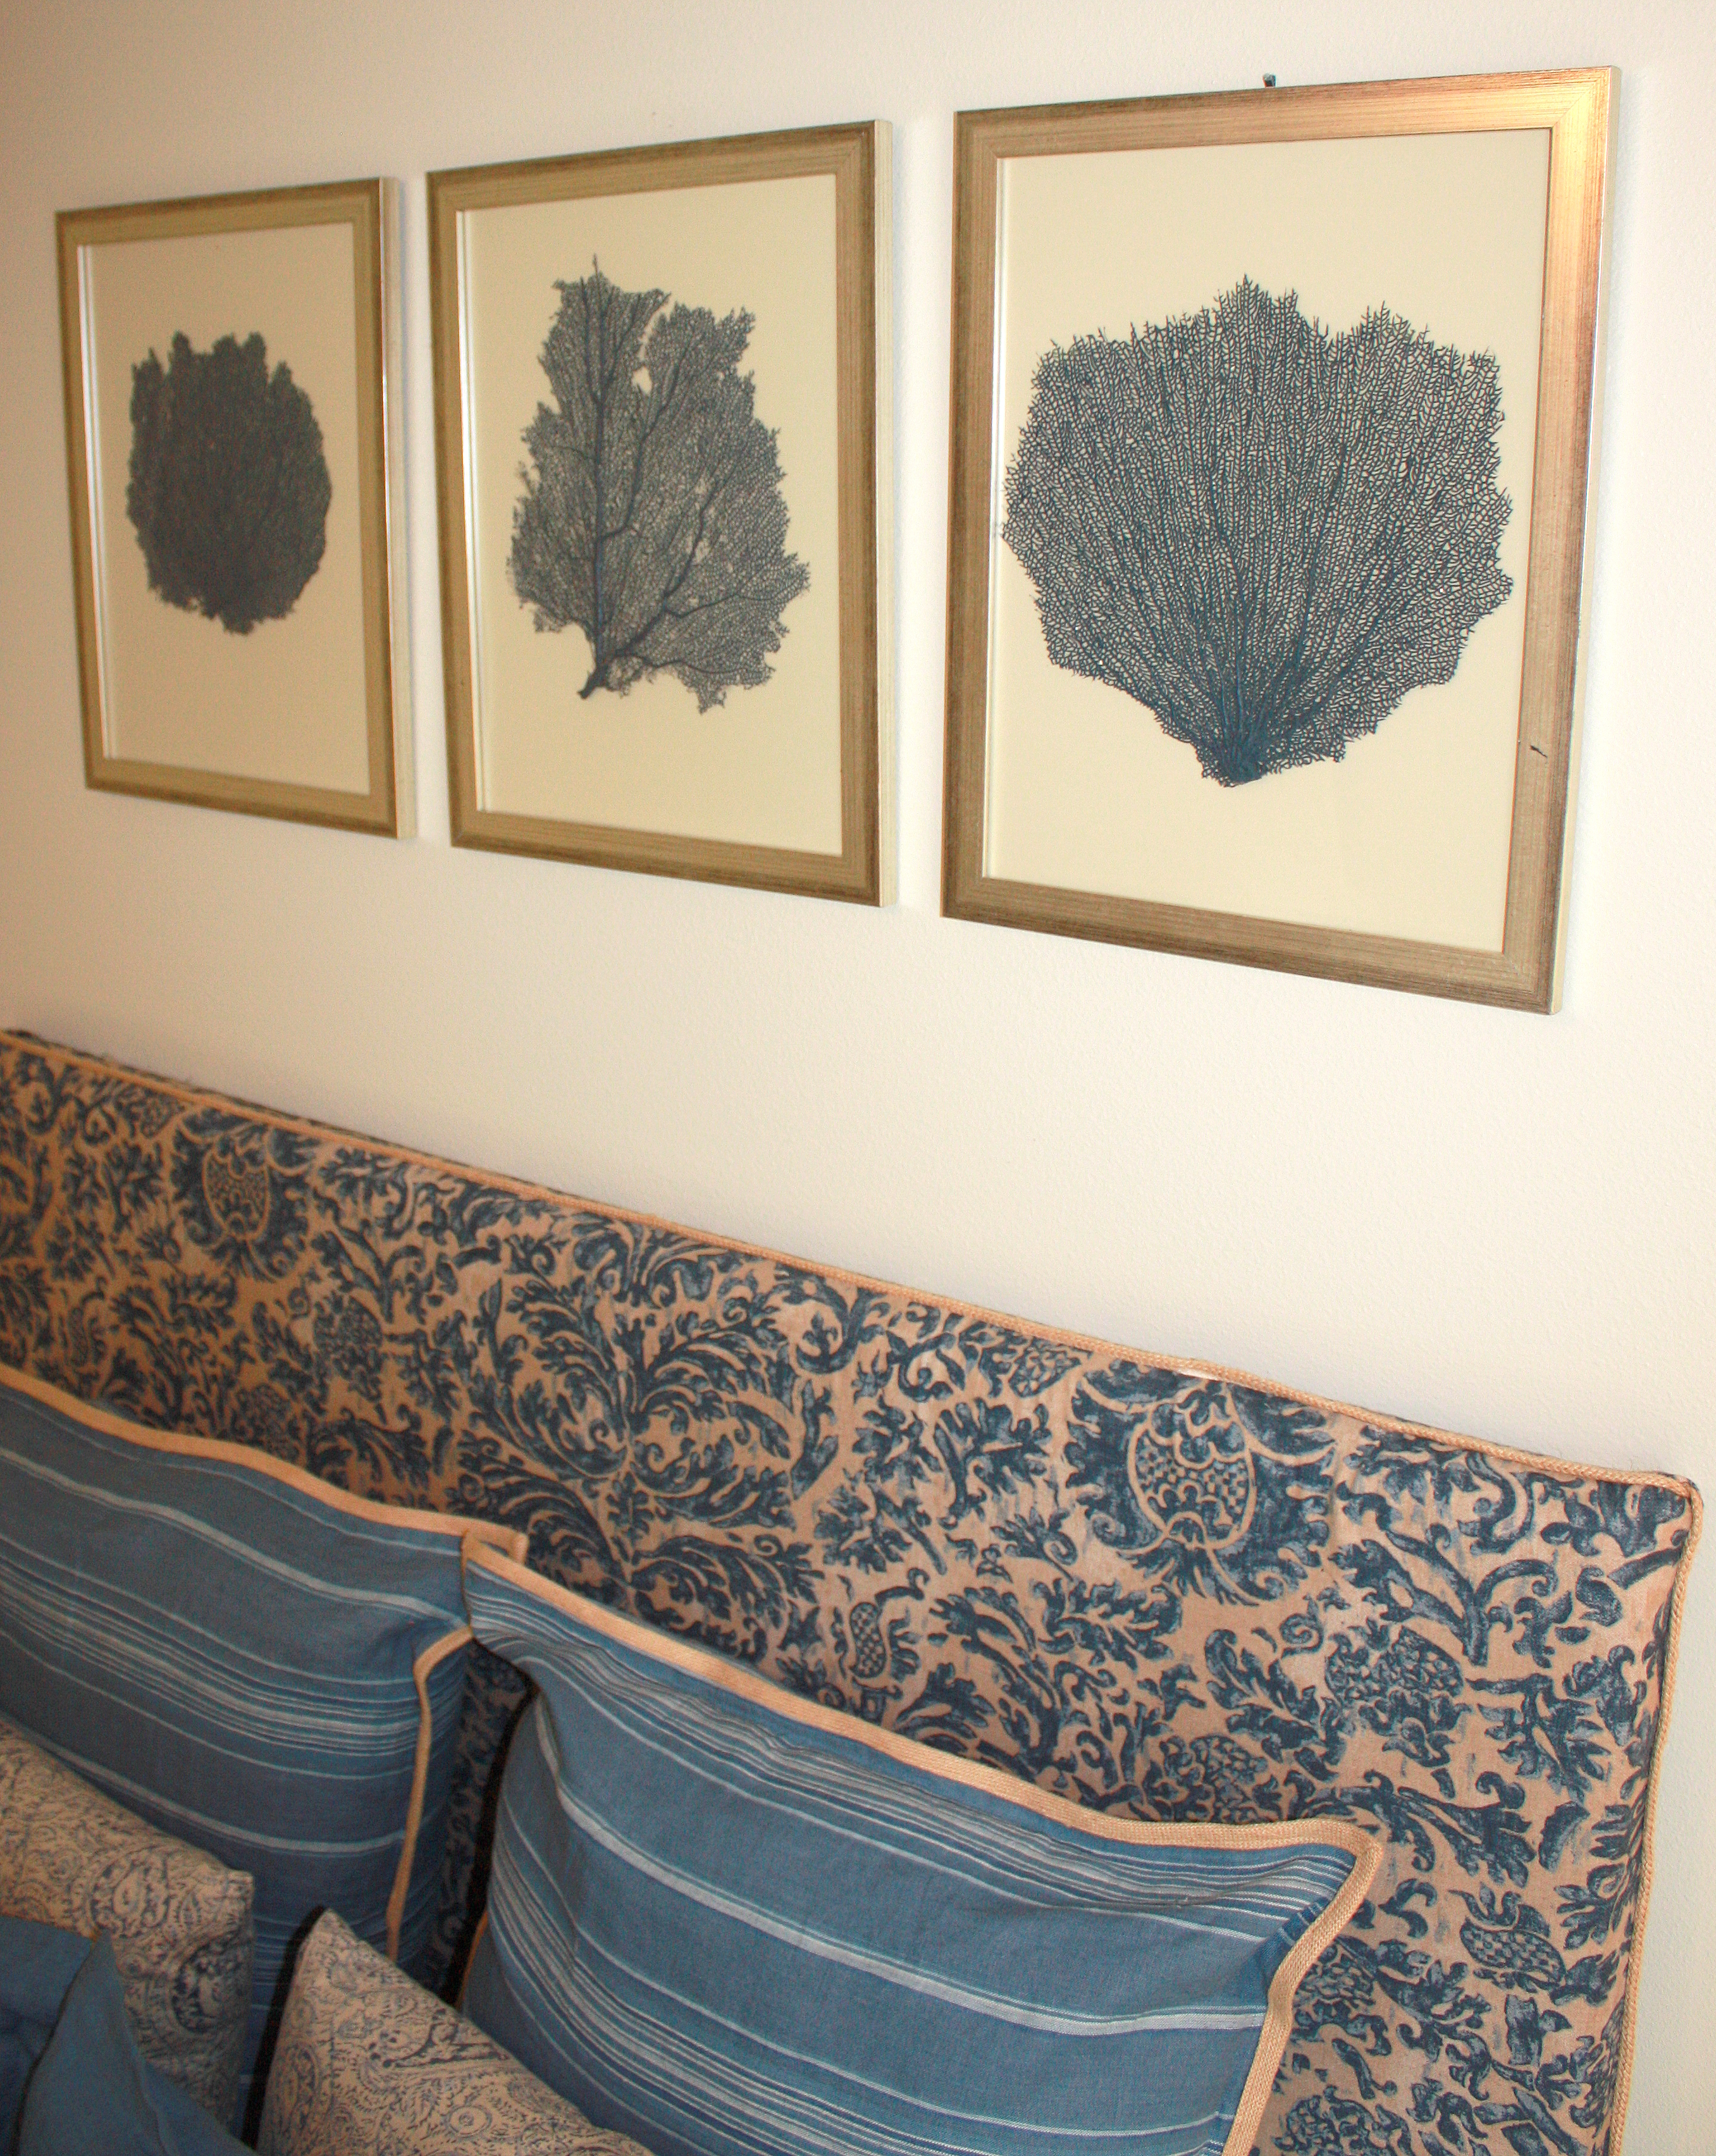 Painted and framed sea fan collections sea fans painted sea fans framed fans amipublicfo Images